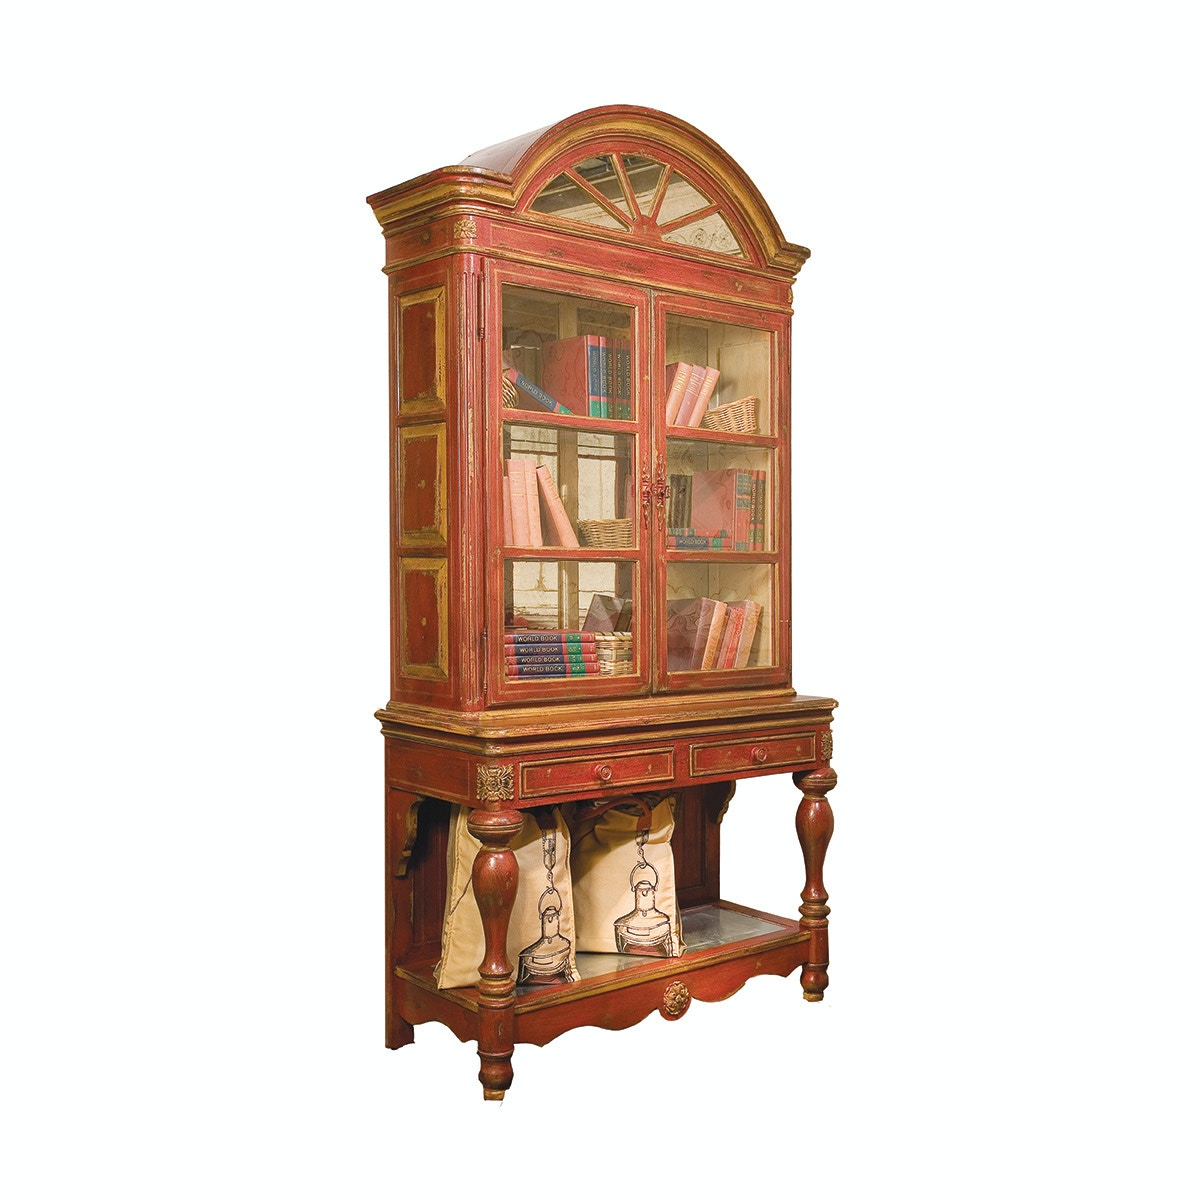 Delicieux Habersham Plantation Corporation Savannah Cabinet On Stand 23 2210